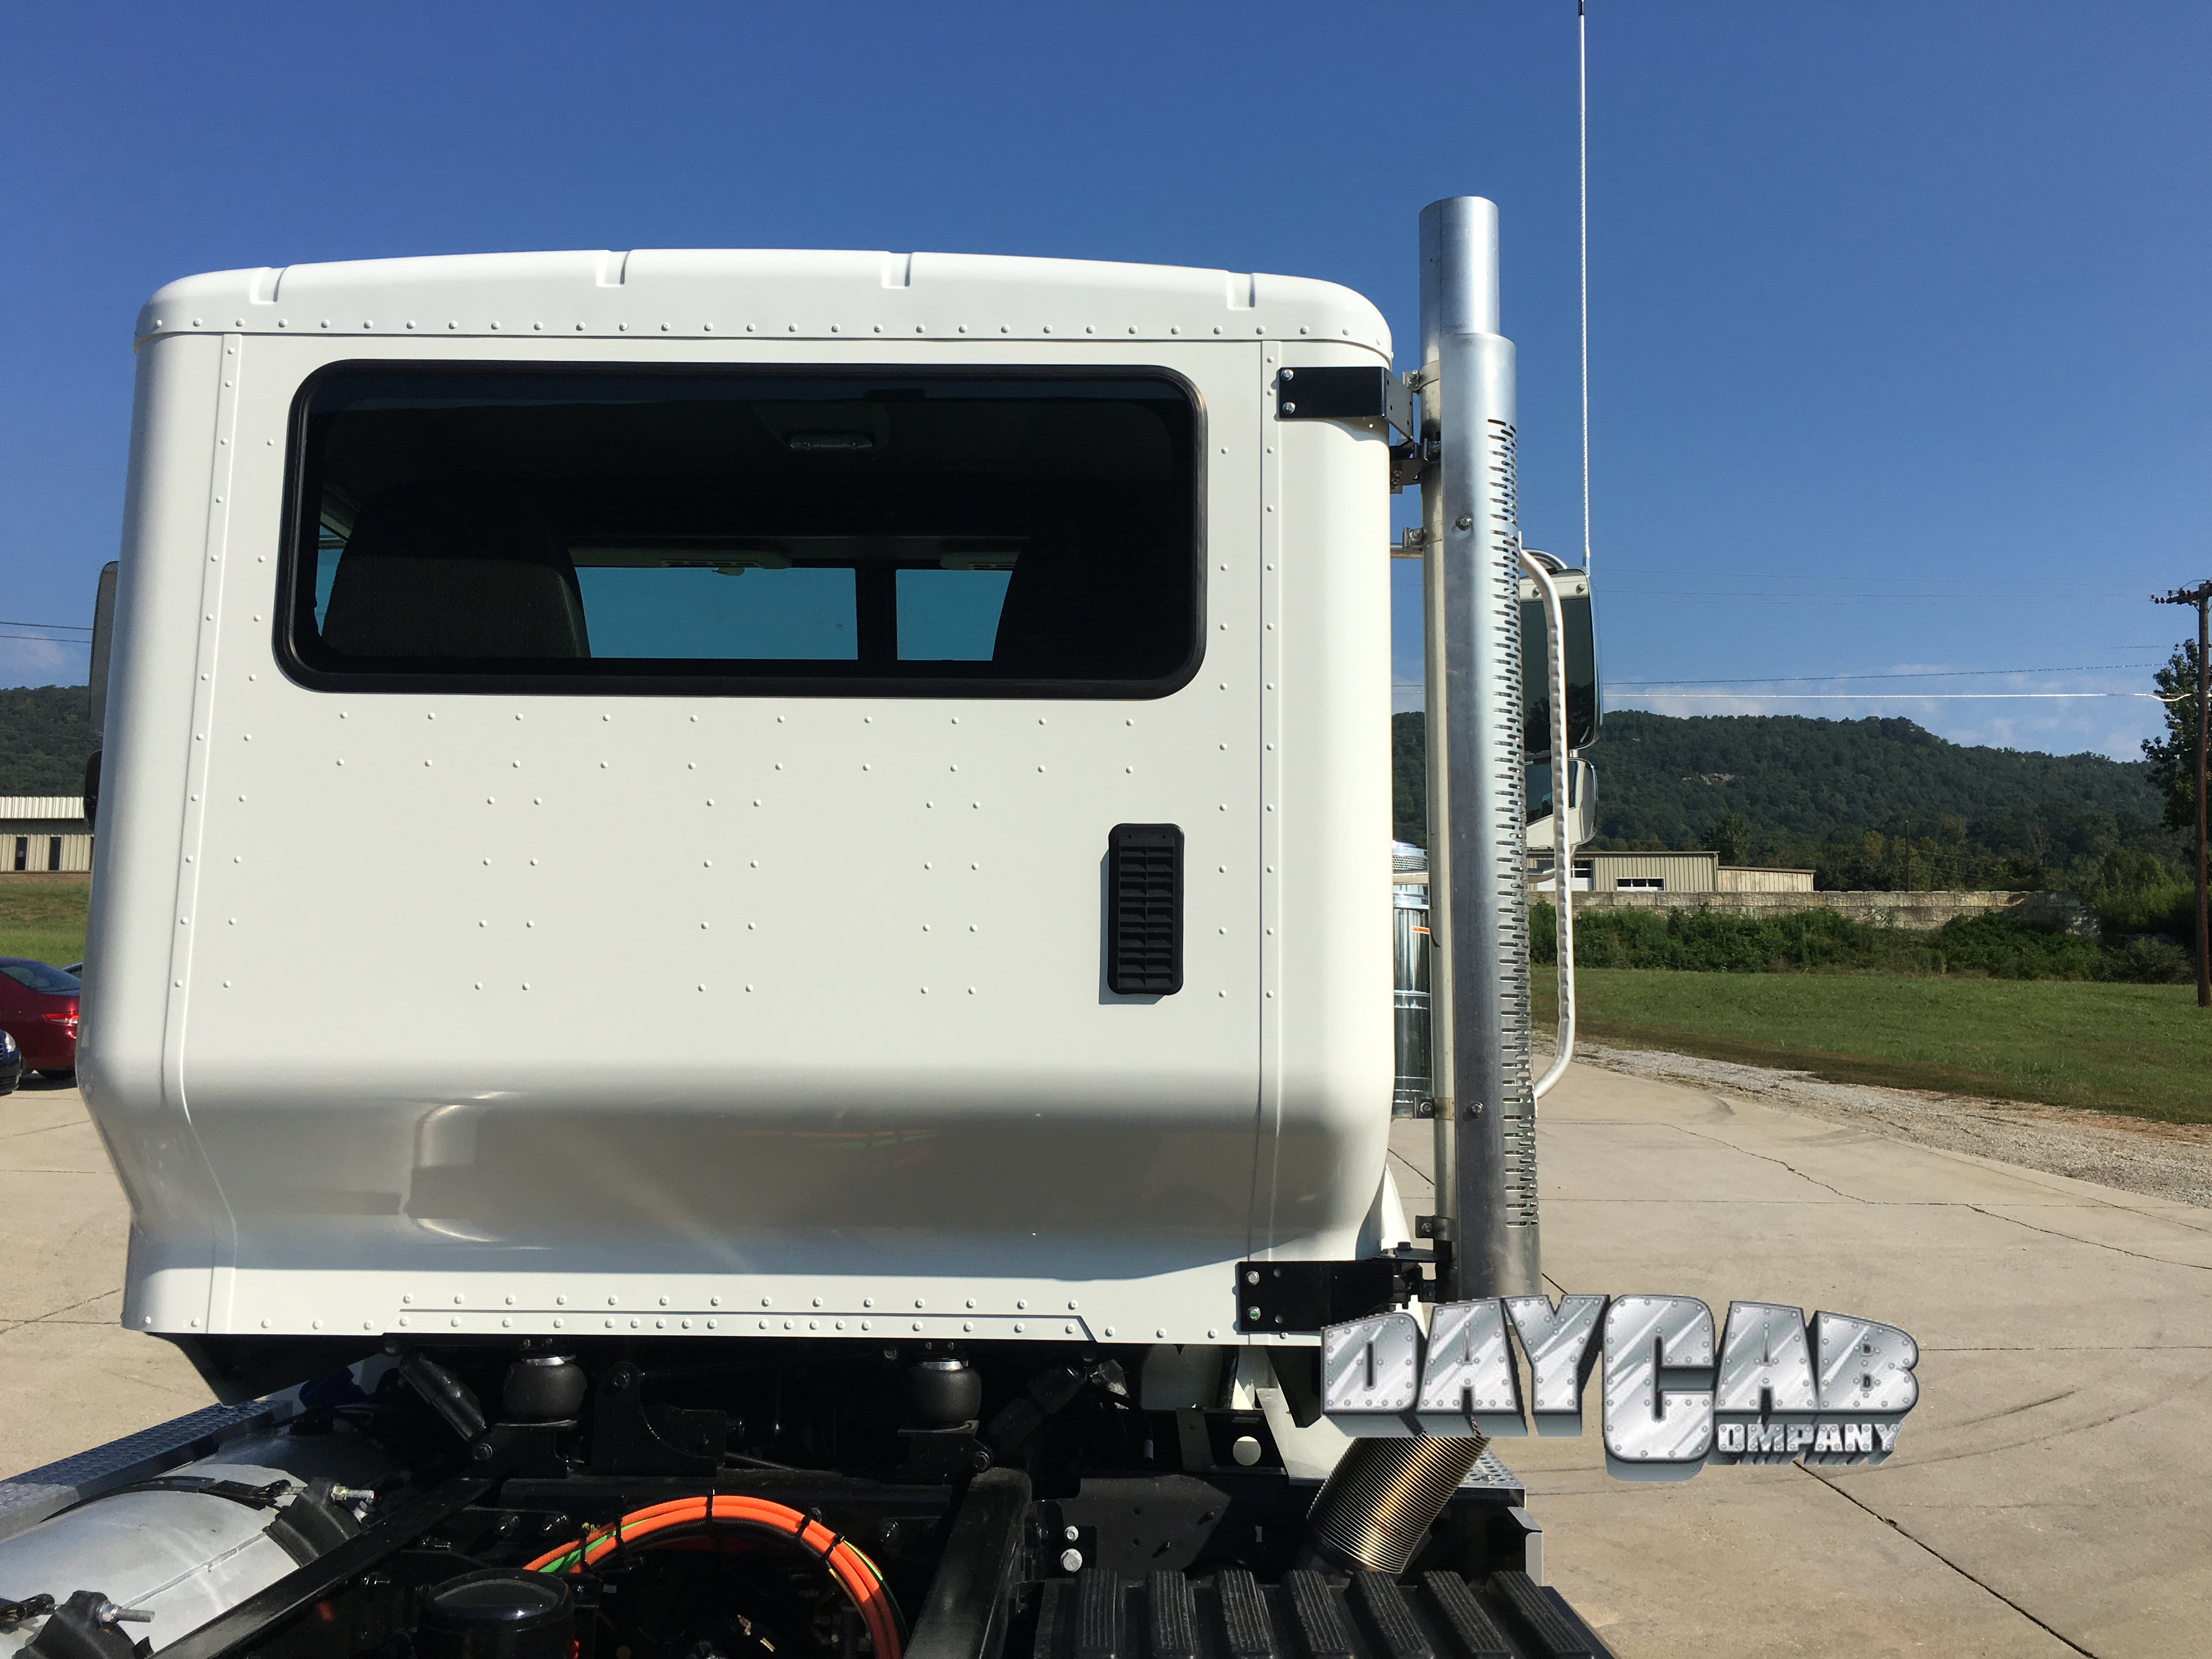 New International HX Extended Cab - Daycab Company